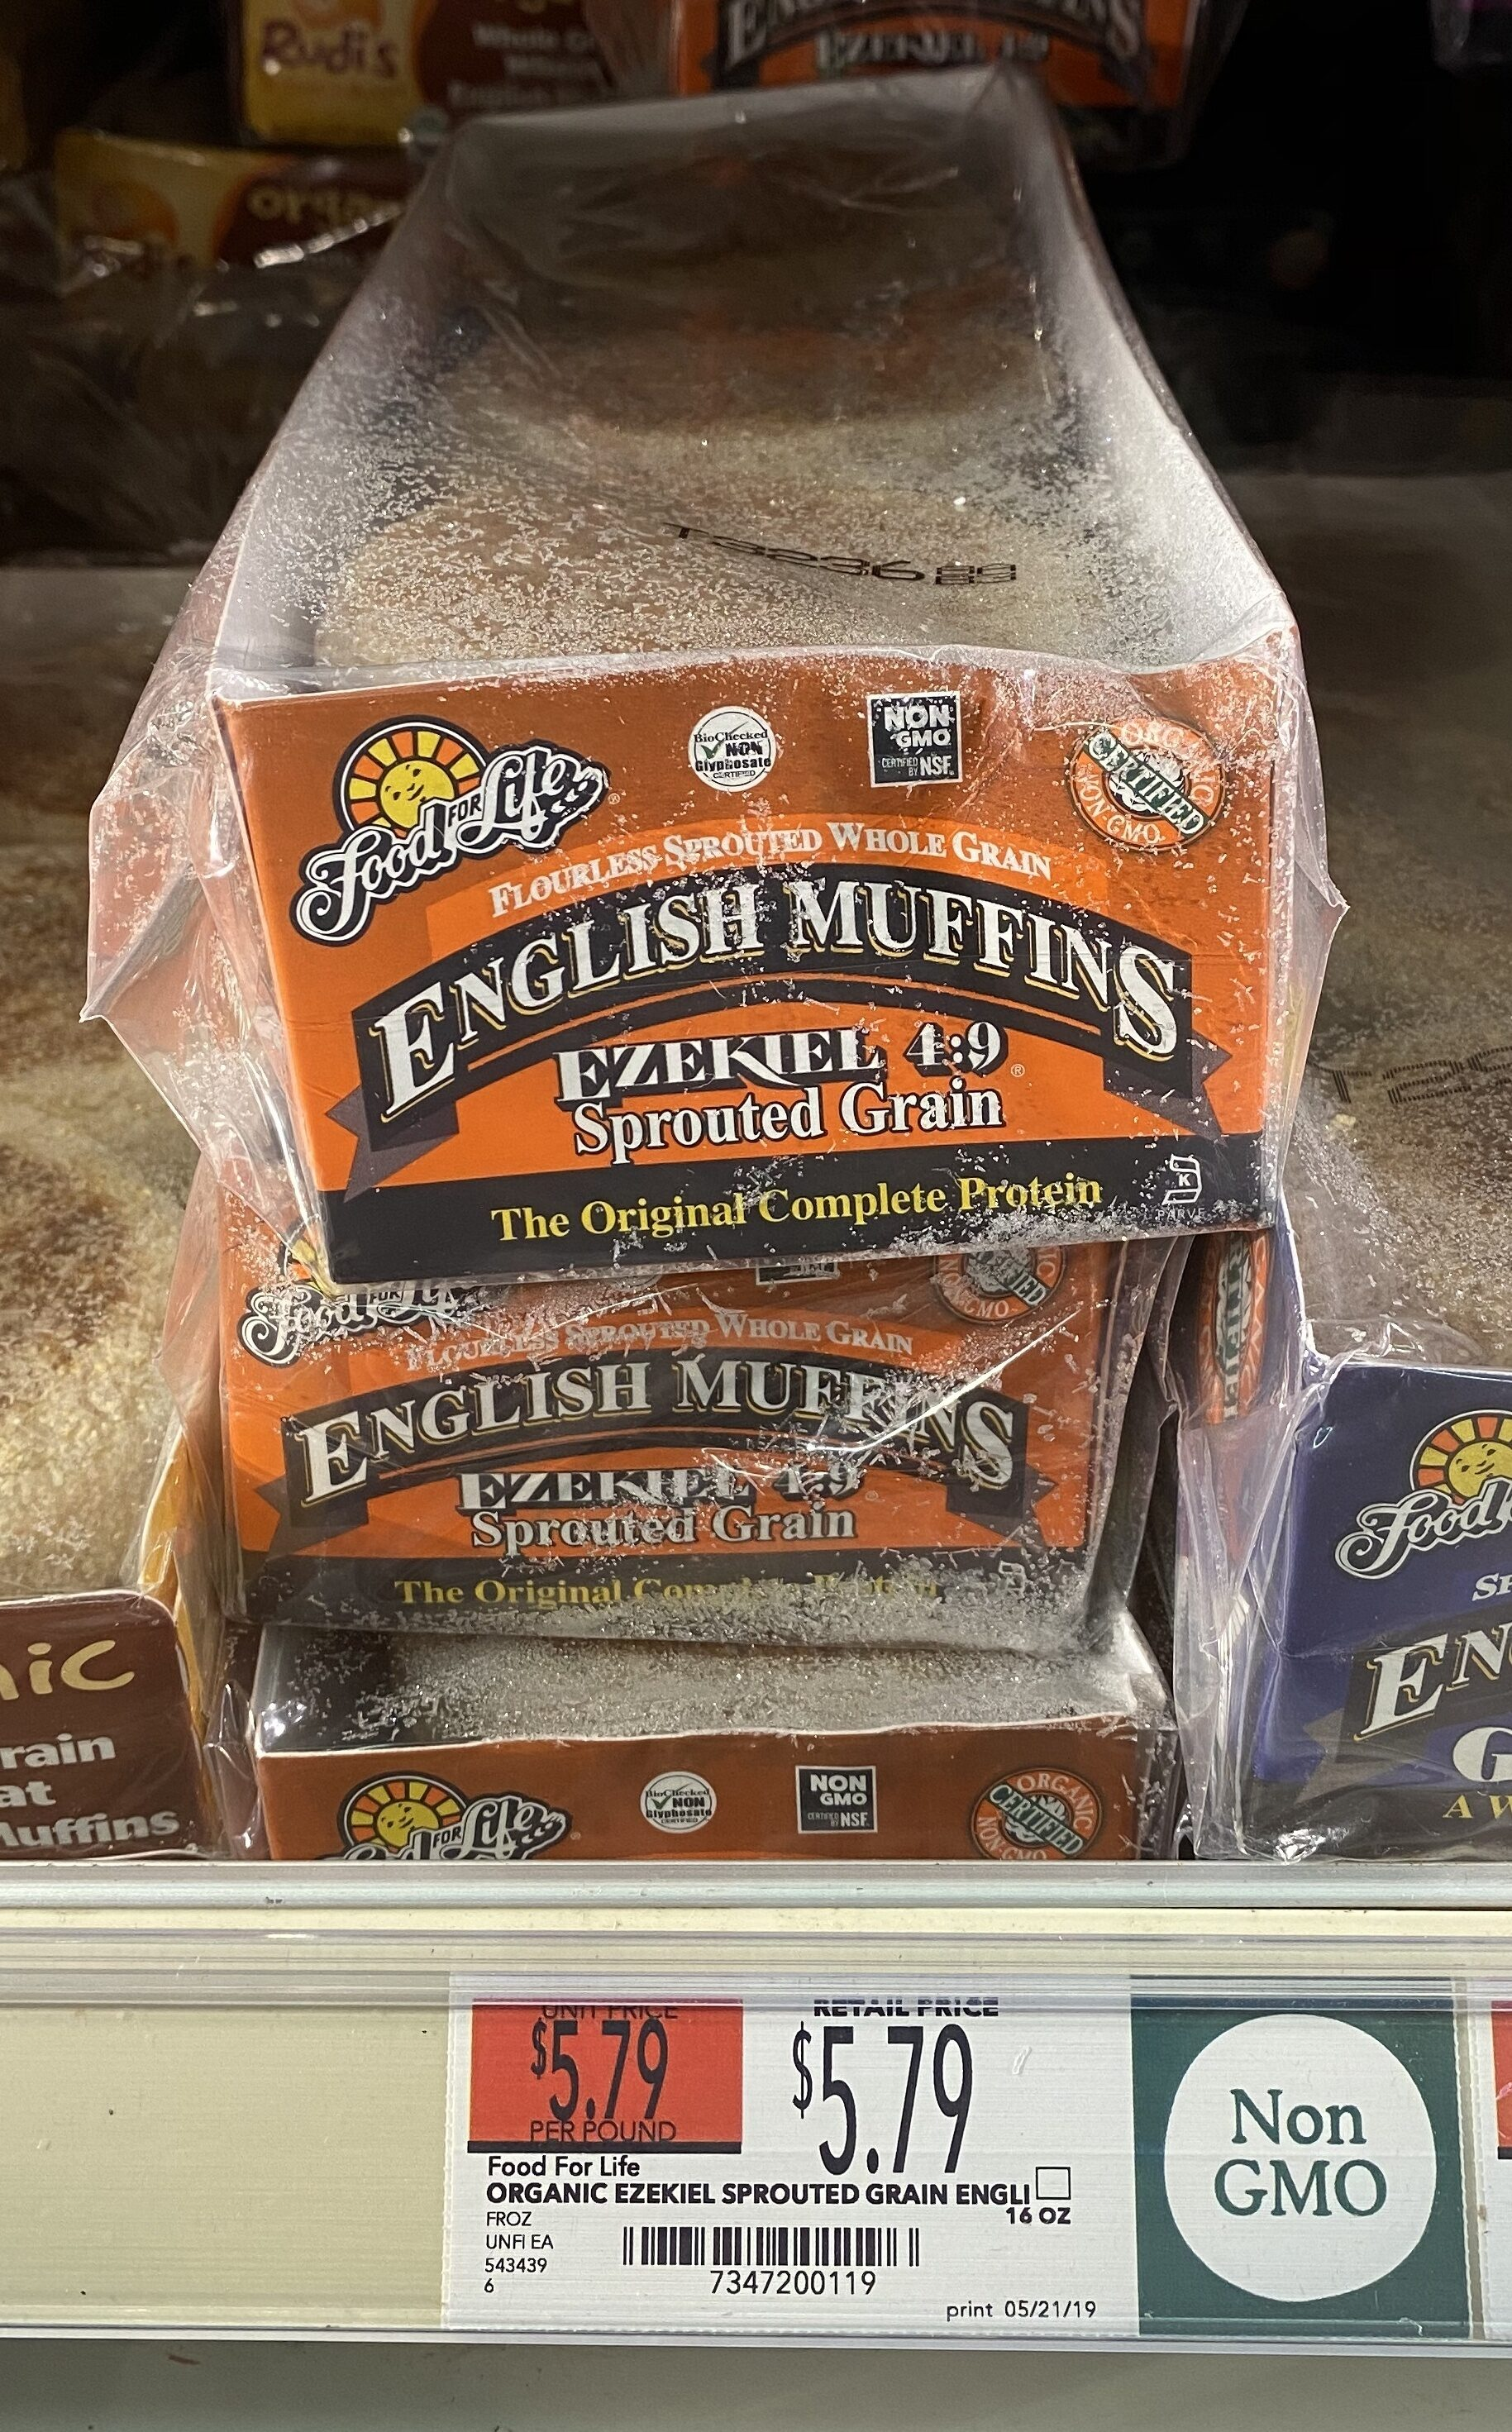 Food for life, ezekiel 4:9, sprouted grain english muffins - Product - en